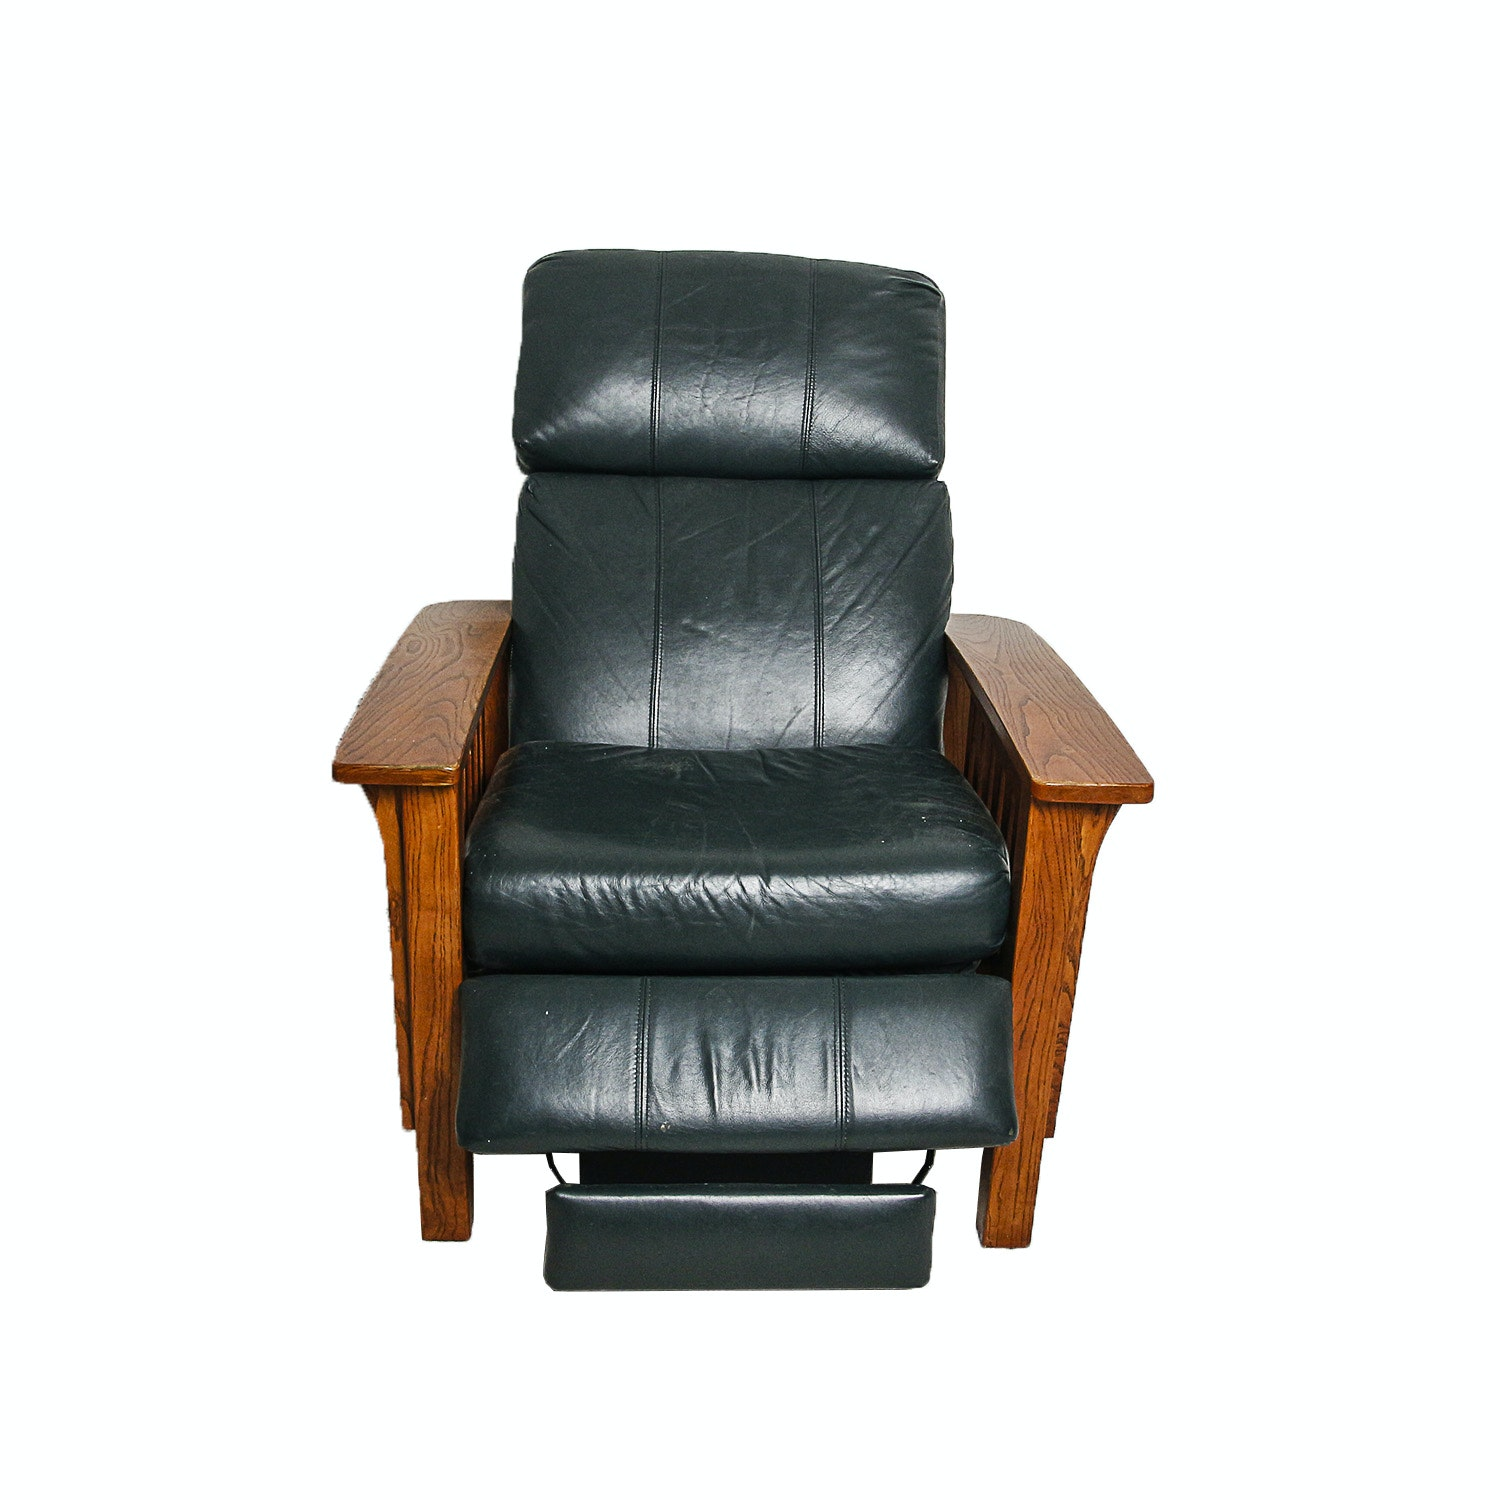 Arts and Crafts Style Oak Recliner by Lane